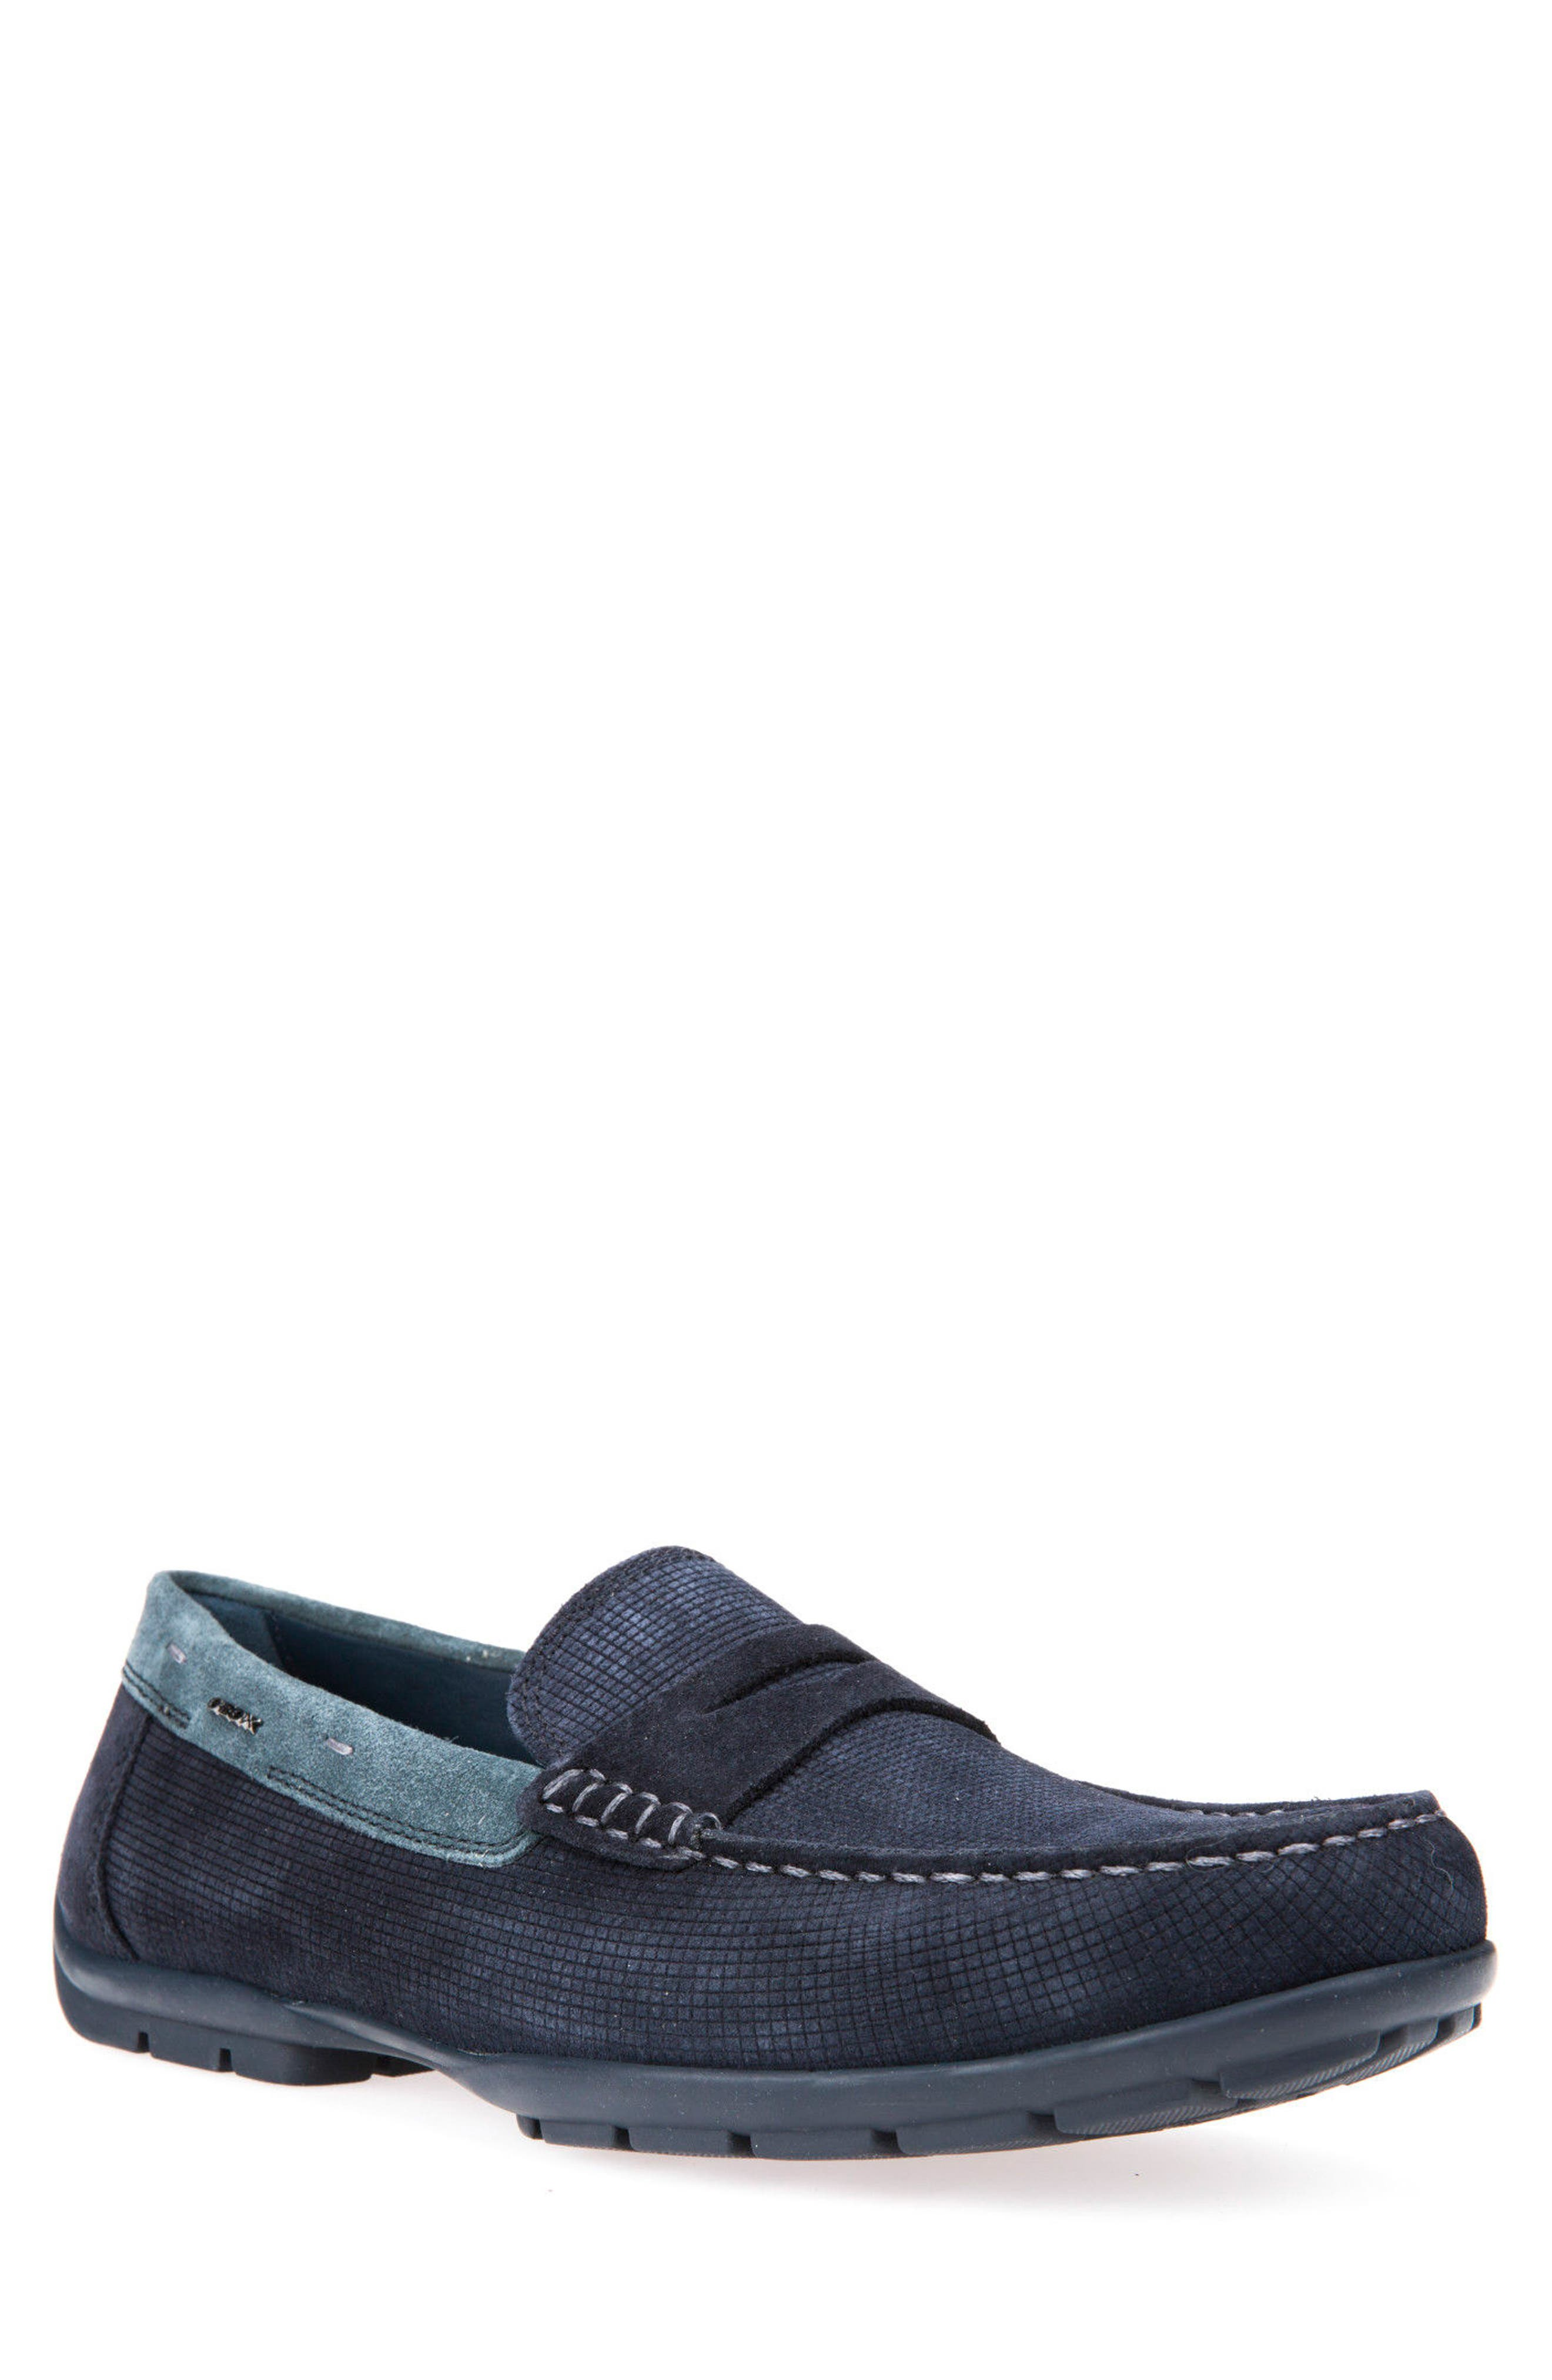 Main Image - Geox Monet W 2Fit Driving Moccasin (Men)